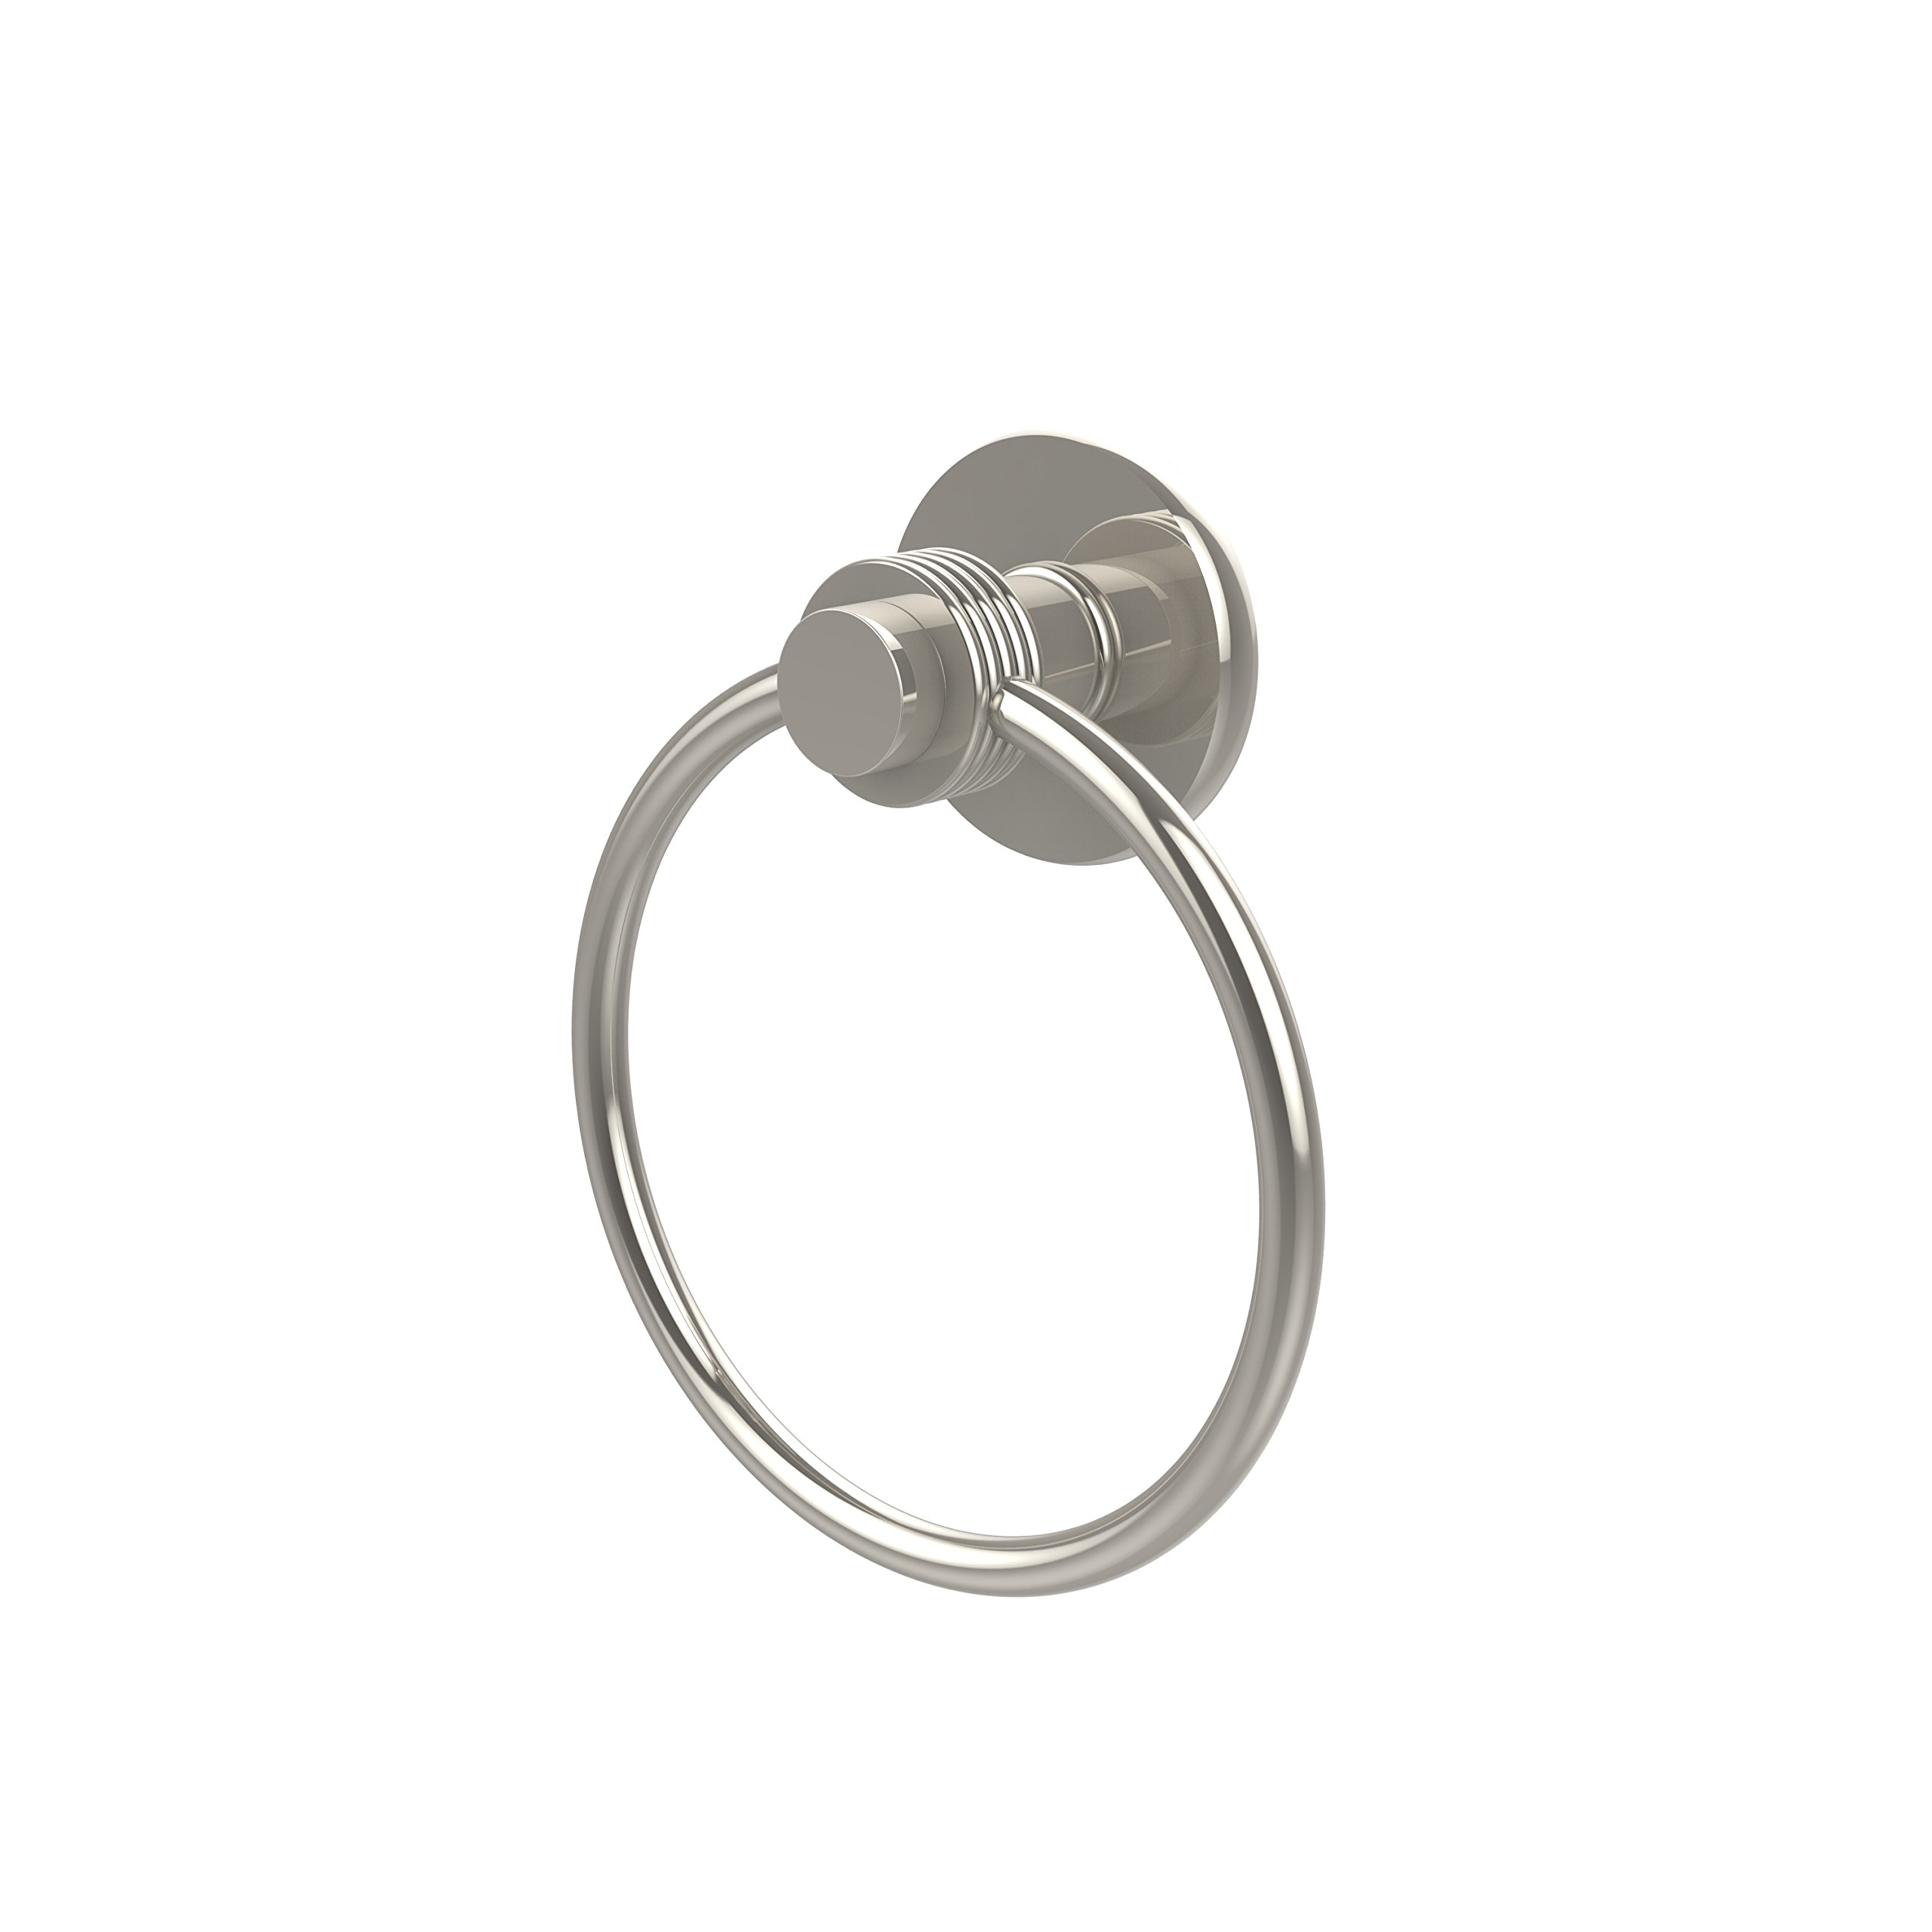 Allied Brass 916G-PNI Towel Ring, Polished Nickel